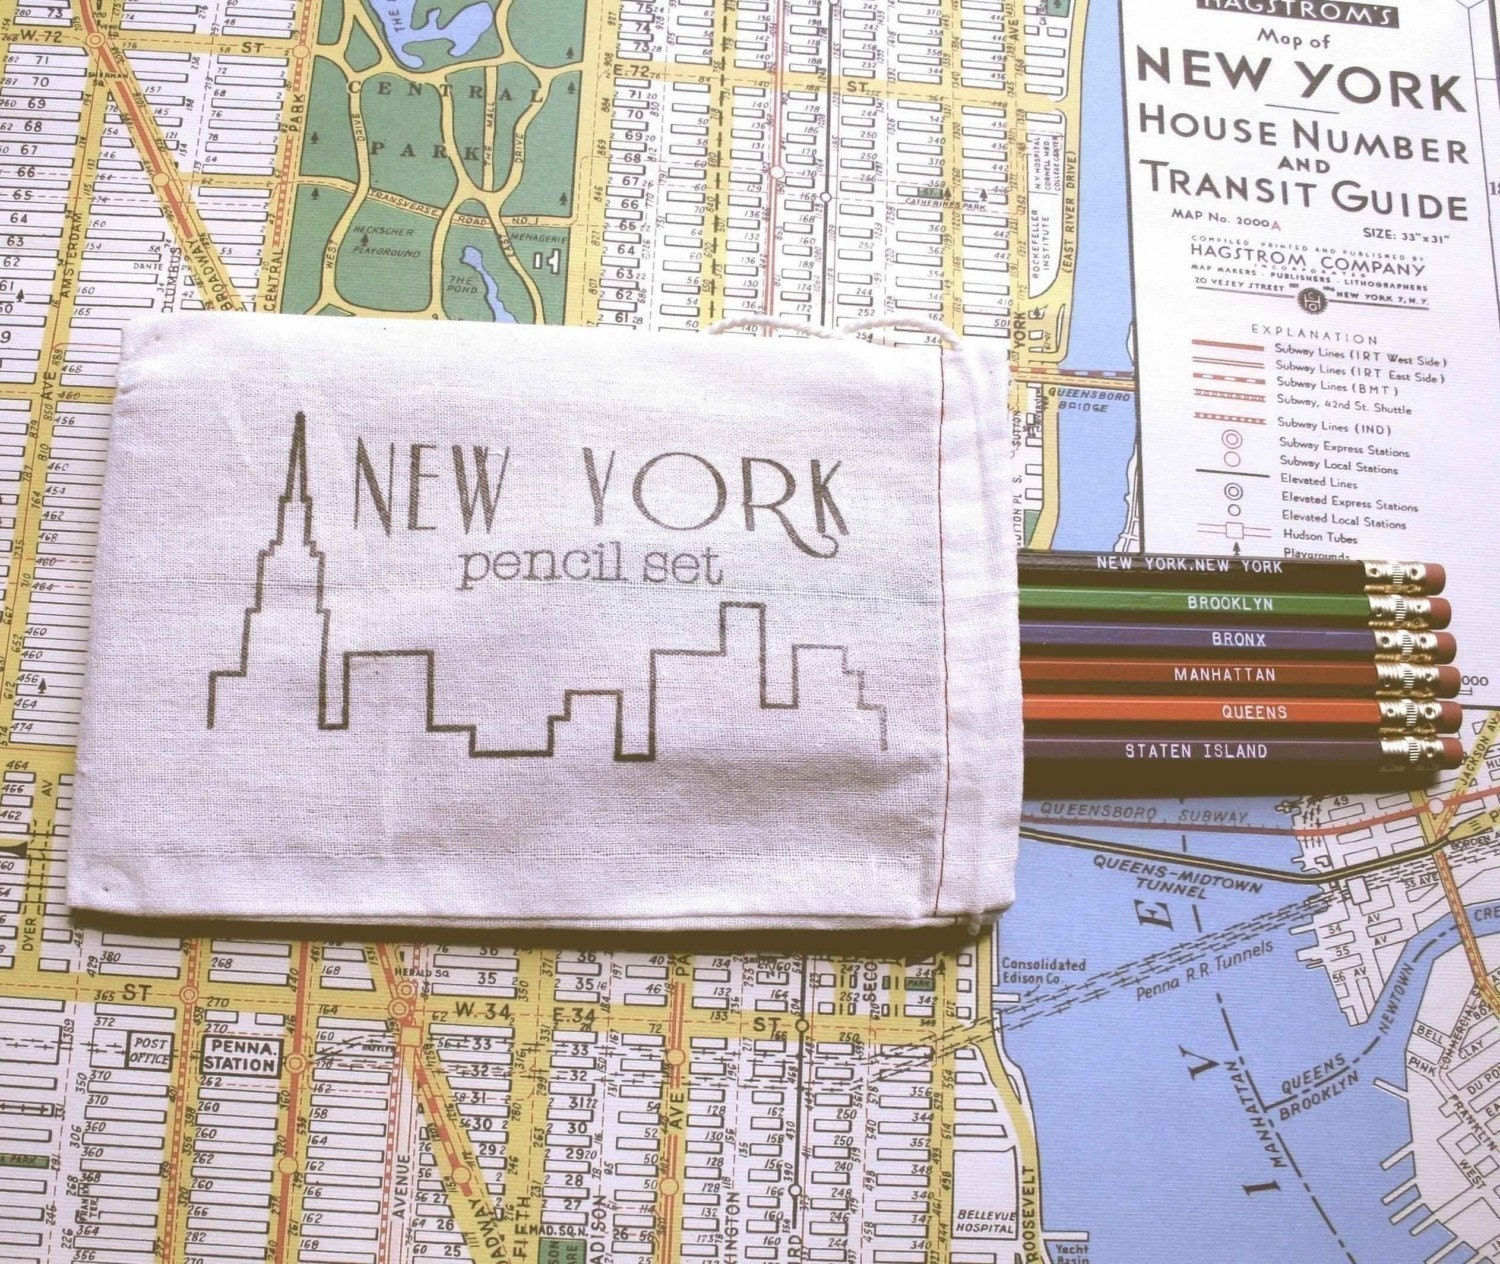 New York Pencil Set